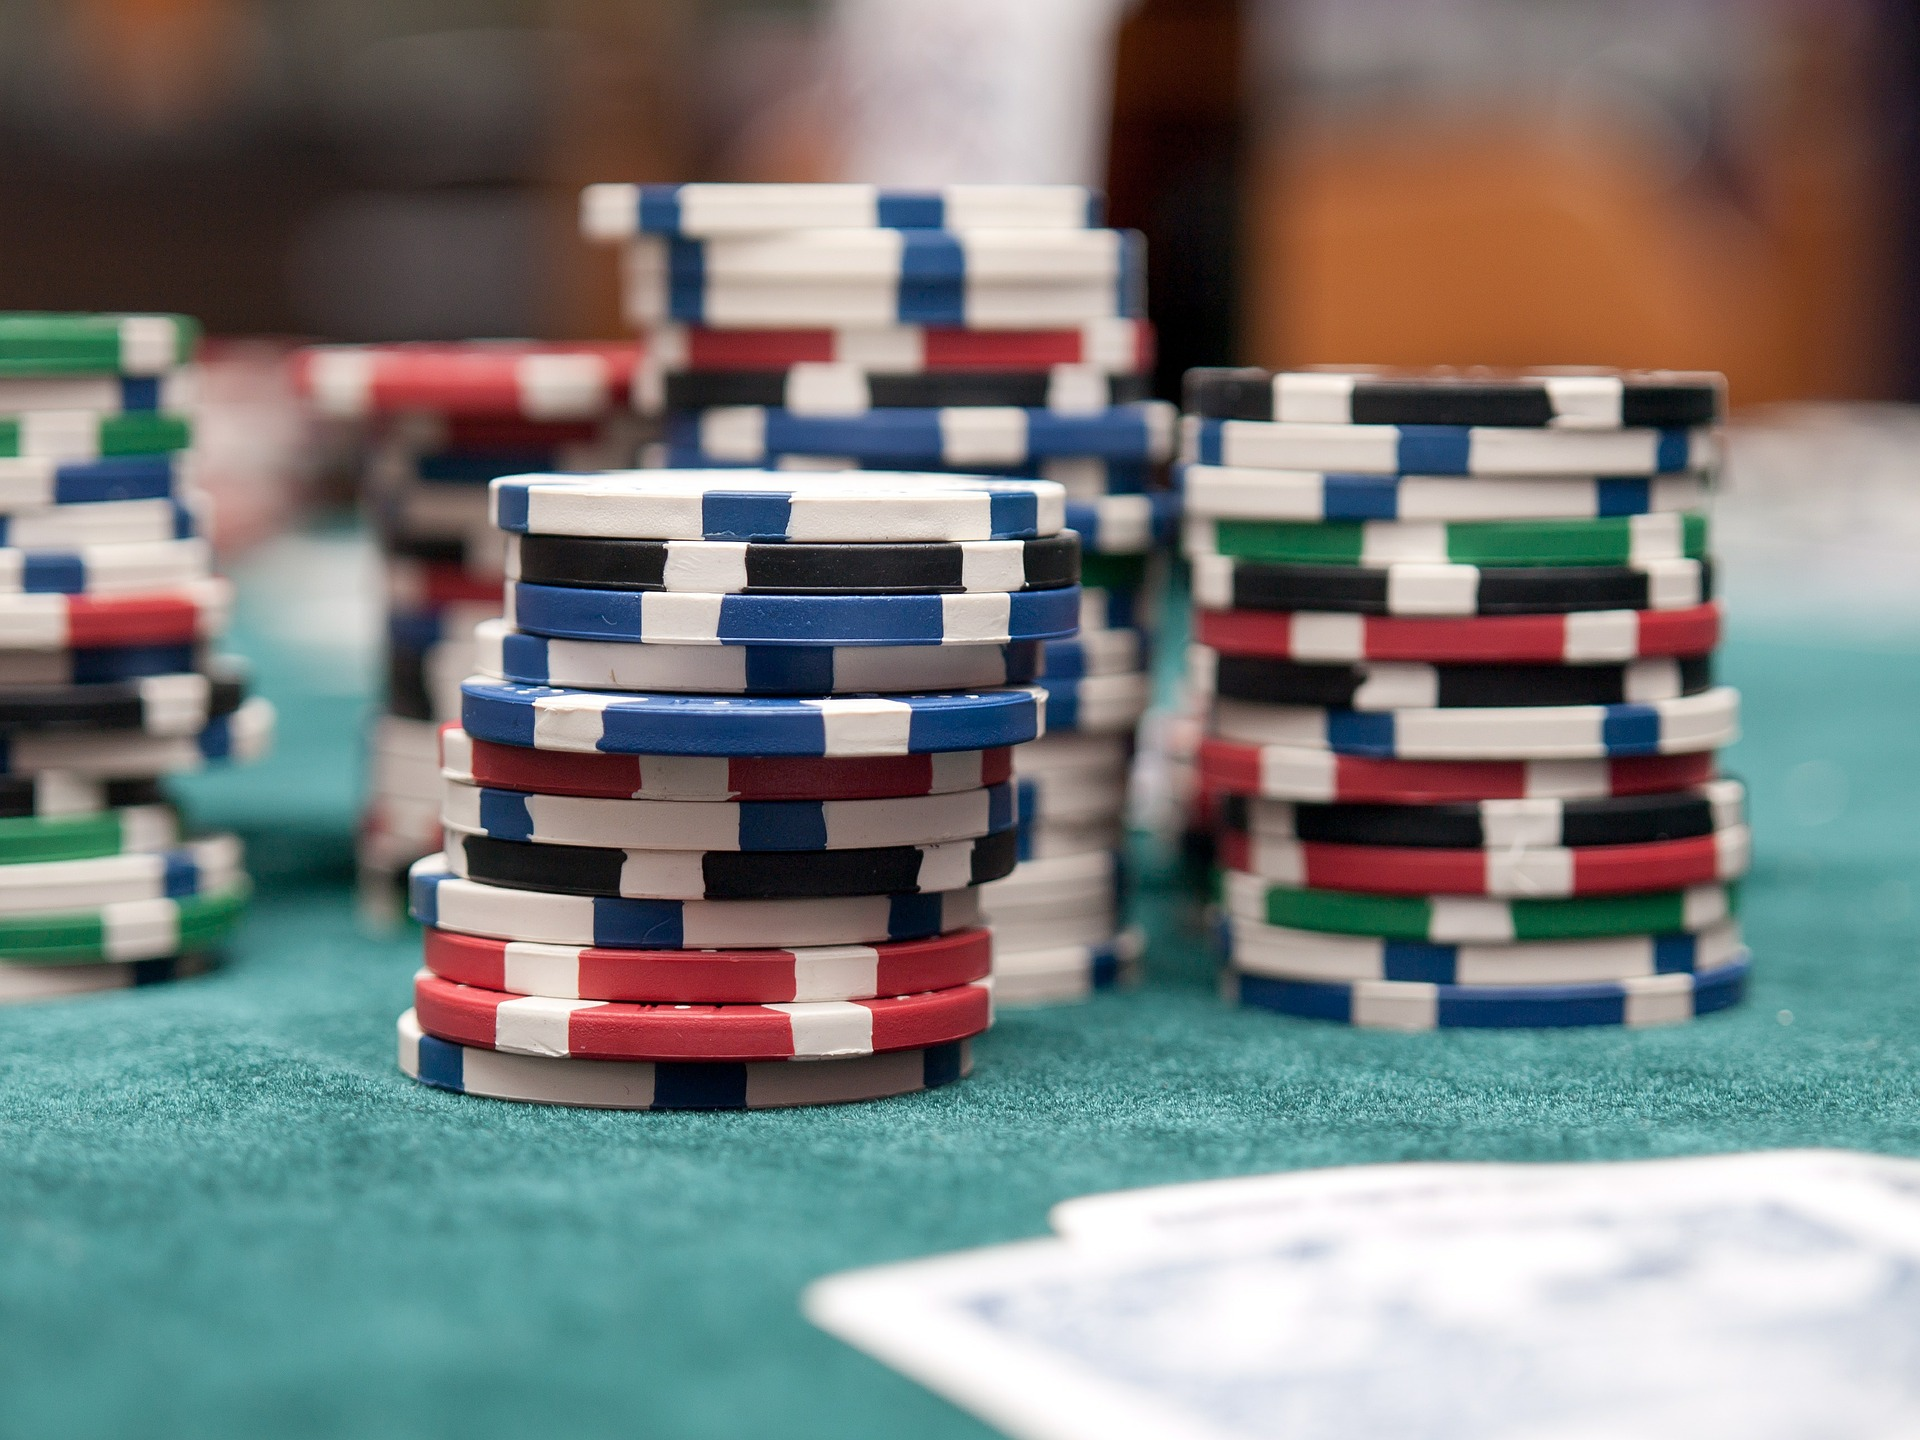 Entertainment is received from online gamblingsites now